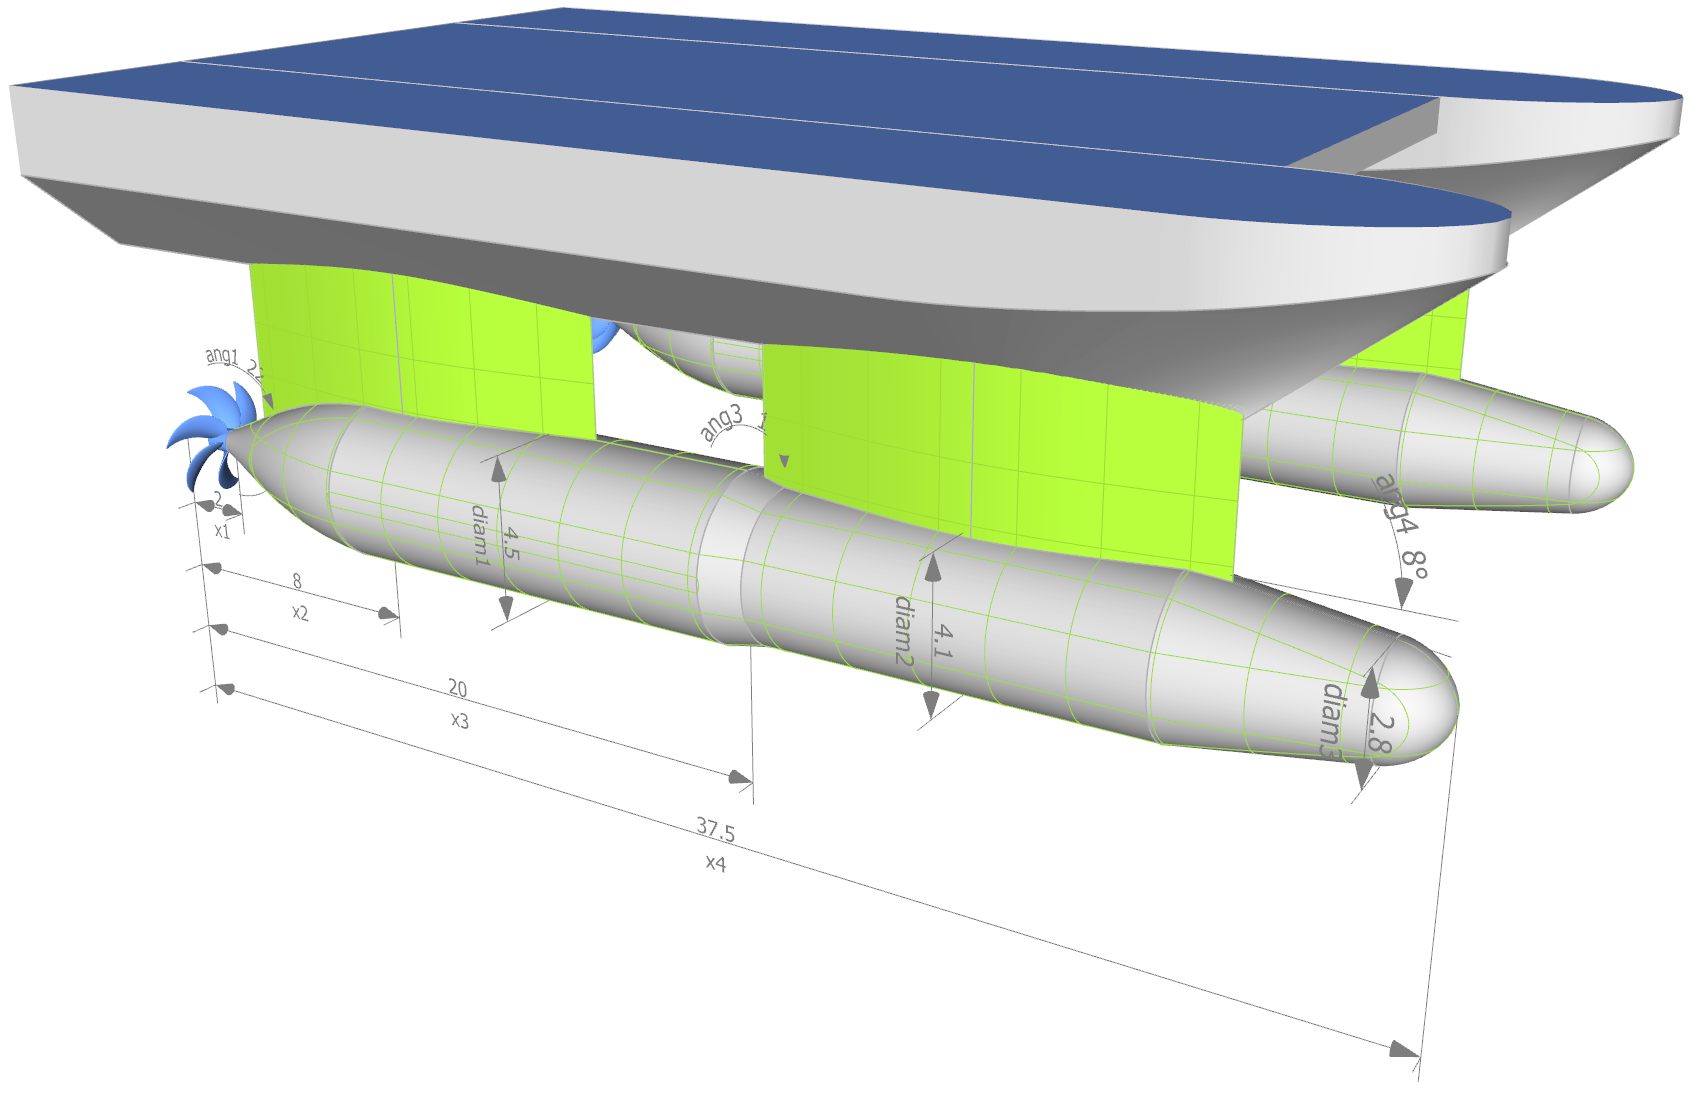 CAESES allows you to design container vessels, yachts, tankers or even swath hull forms